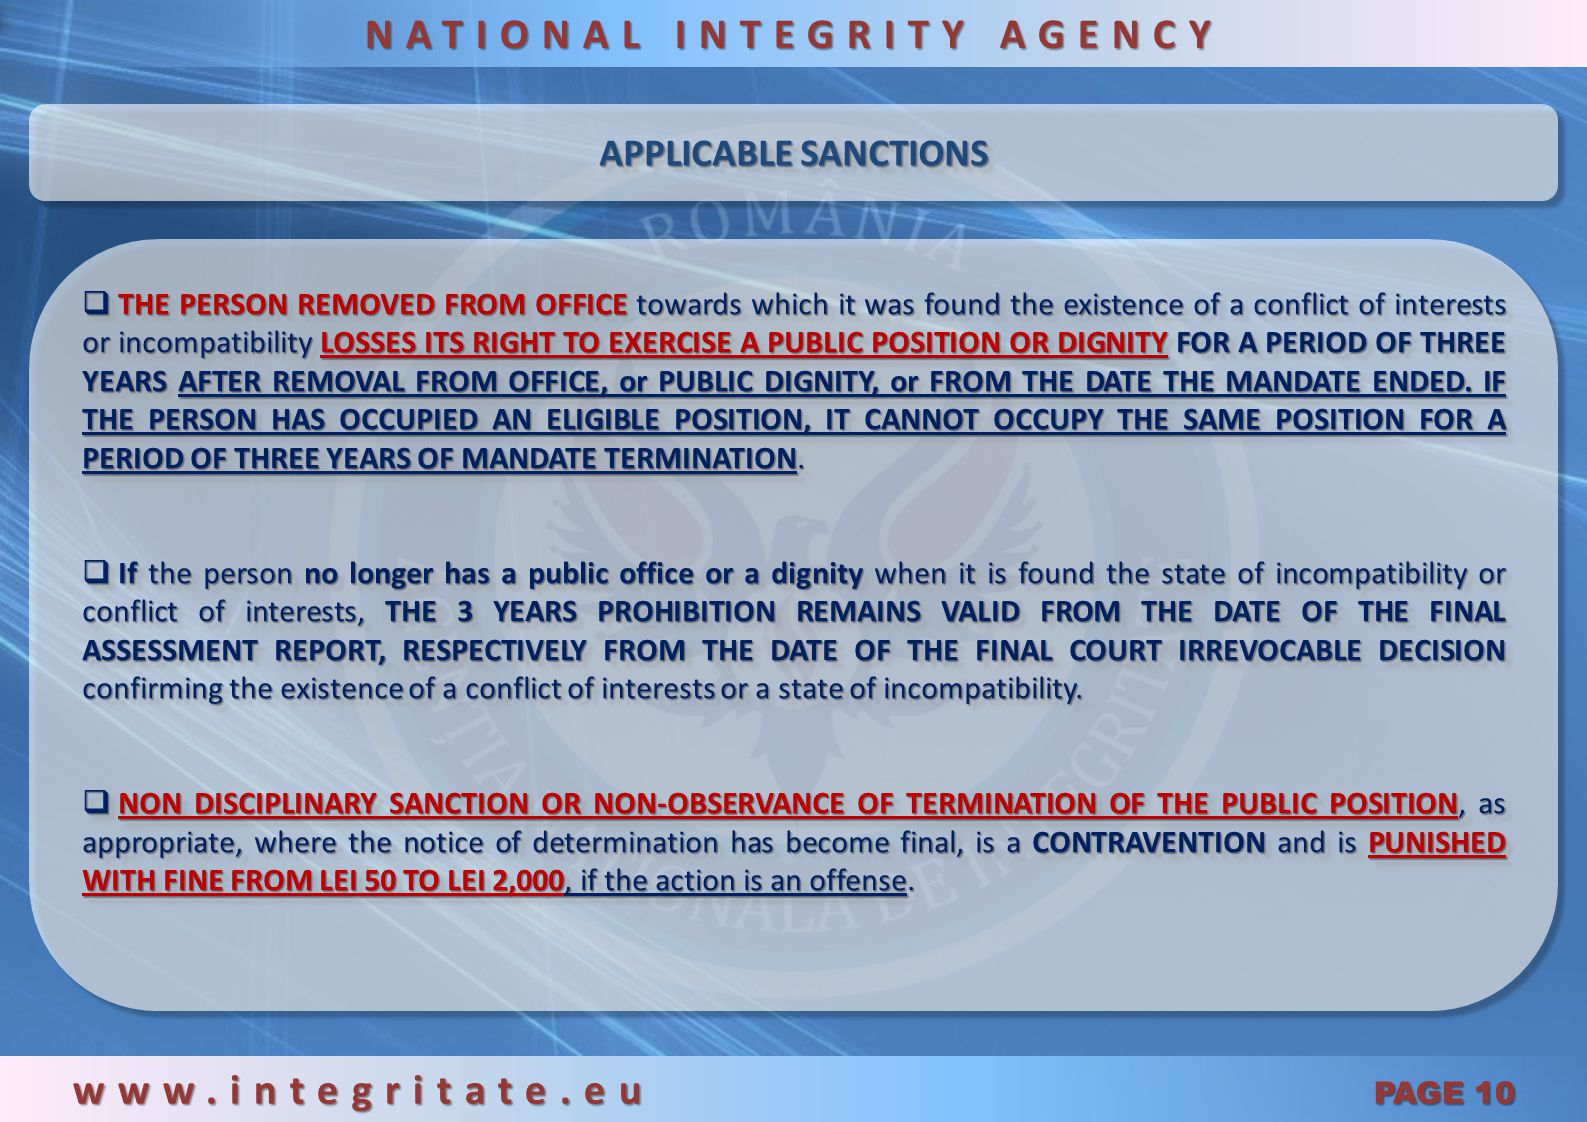 APPLICABLE SANCTIONS www.integritate.eu PAGE 9 NATIONAL INTEGRITY AGENCY  THE PERSON UNDER ASSESSMENT CAN CHALLENGE THE CONFLICT OF INTERESTS OR INCOMPATIBILITY ASSESSMENT REPORT WITHIN 15 DAYS OF ITS RECEIPT, TO THE ADMINISTRATIVE COURT.